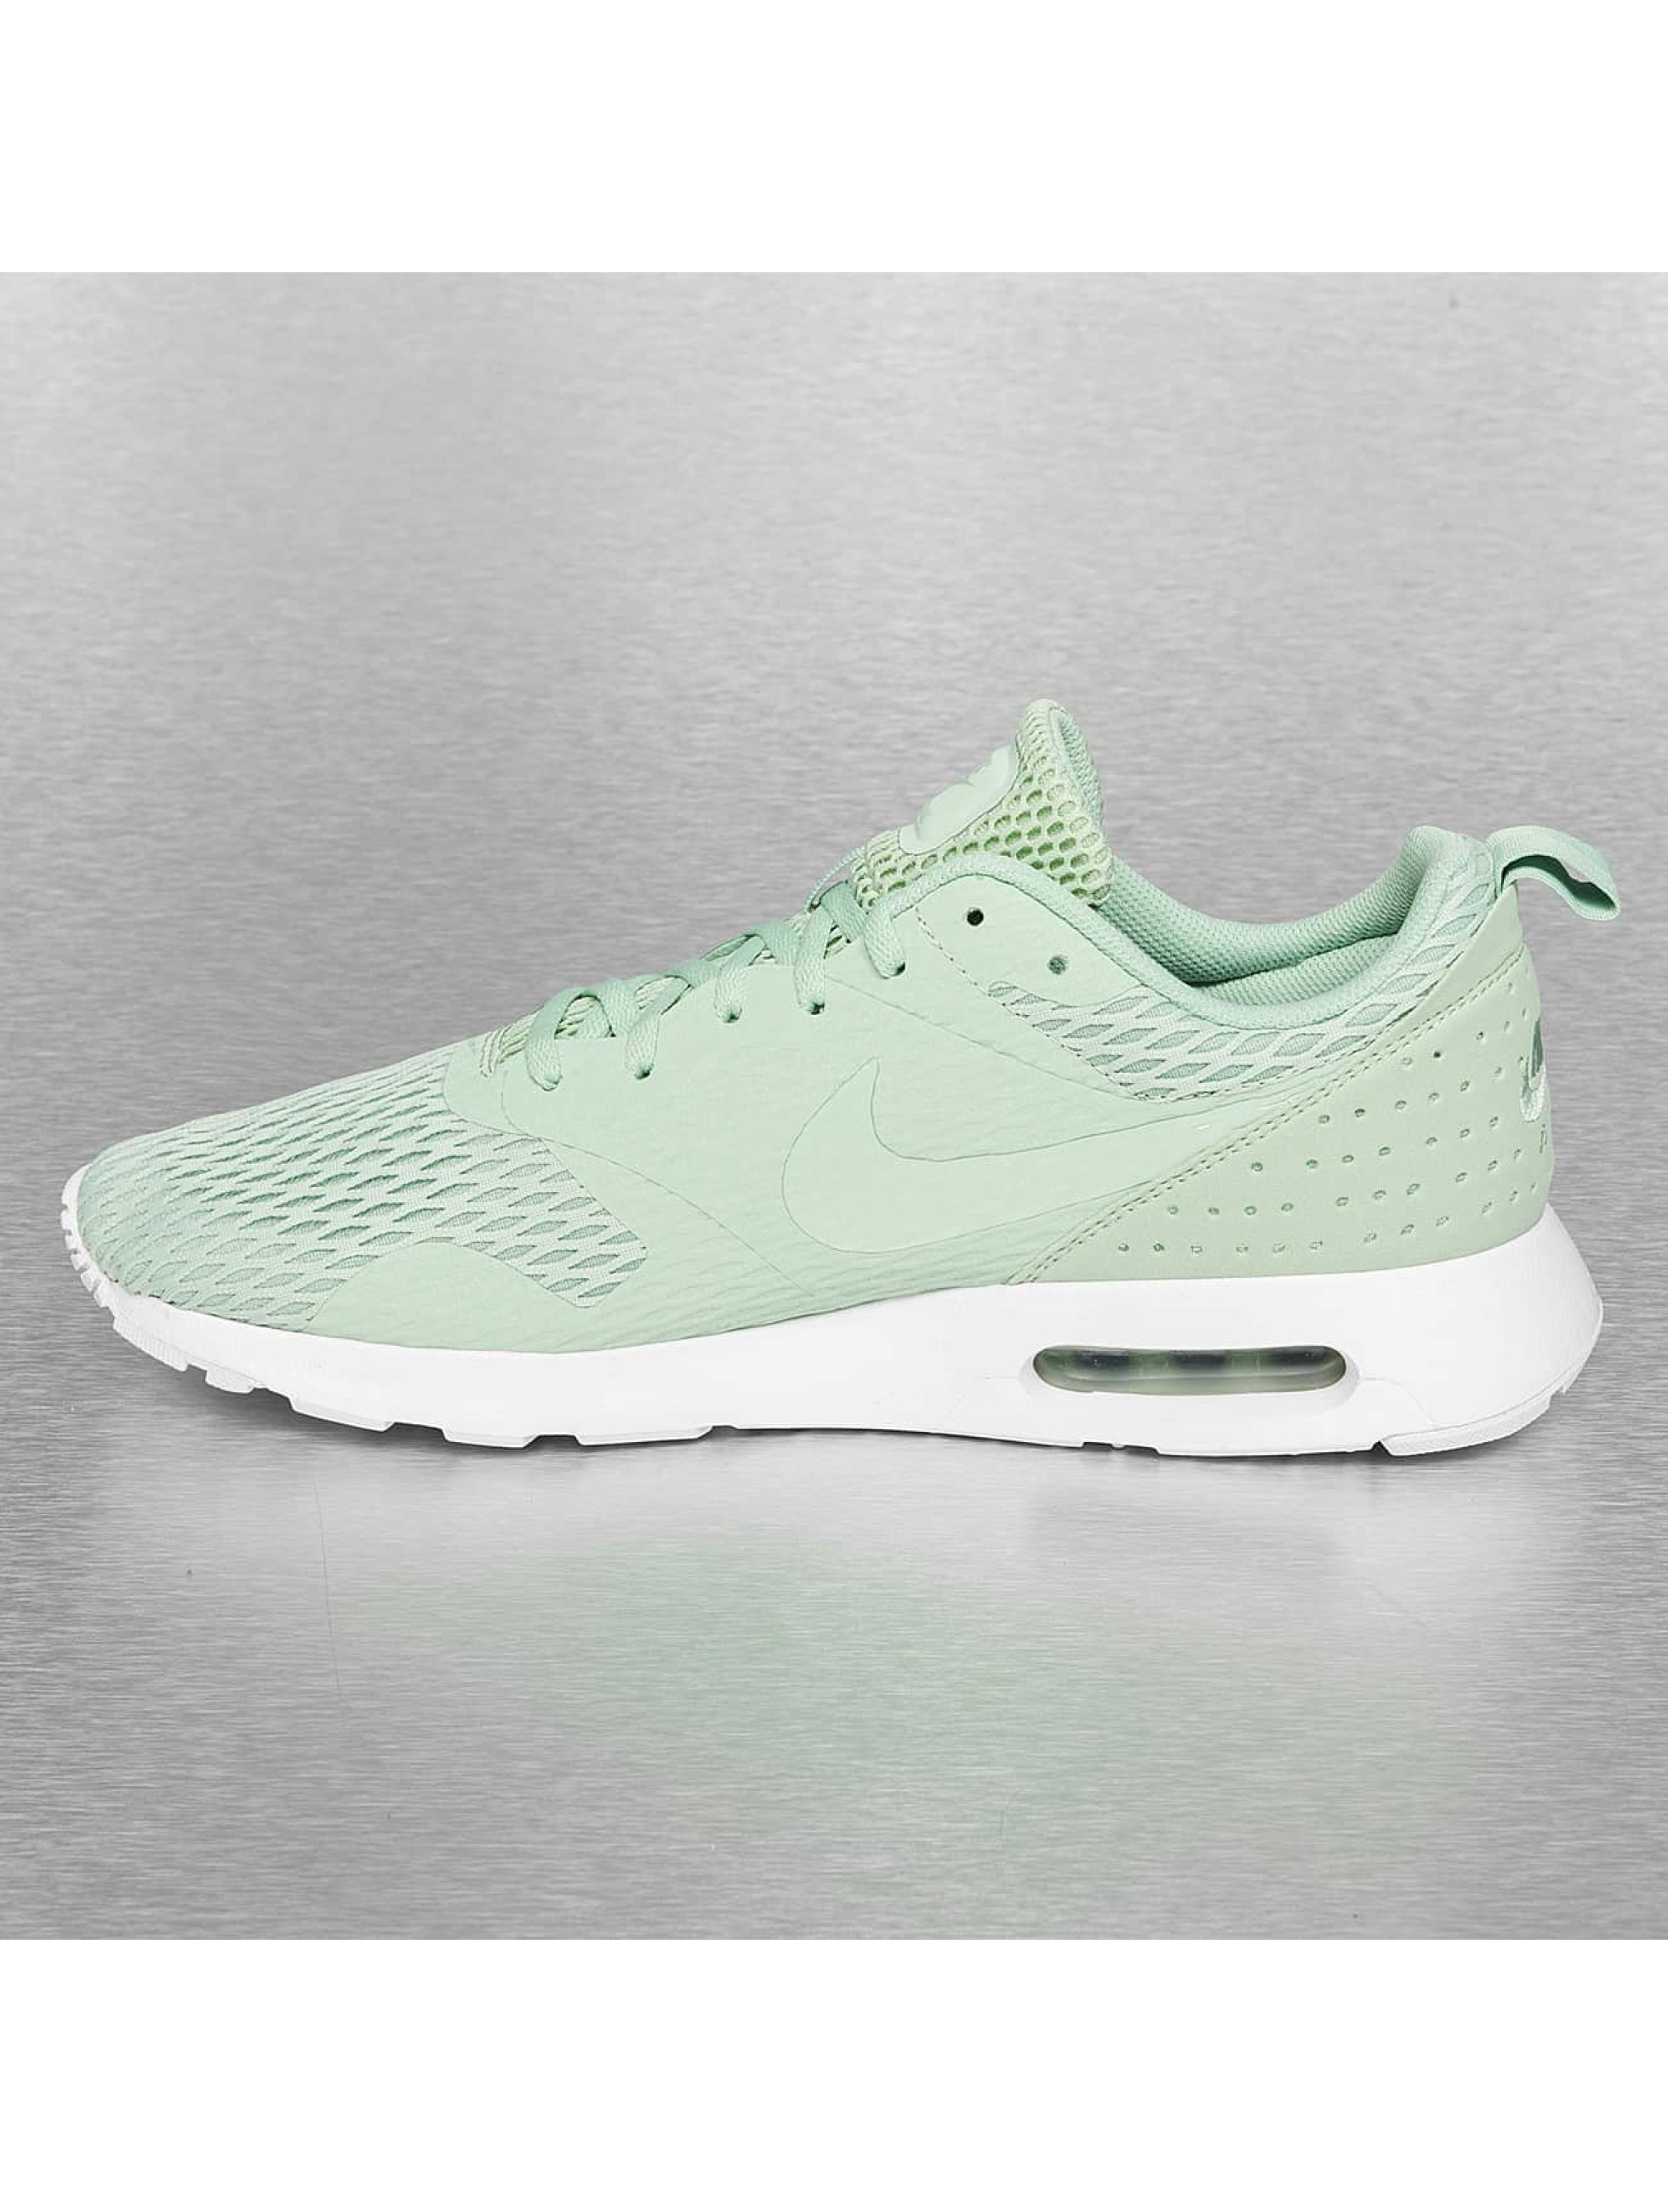 Nike Chaussures Air Max Tavas Special Edition Nike